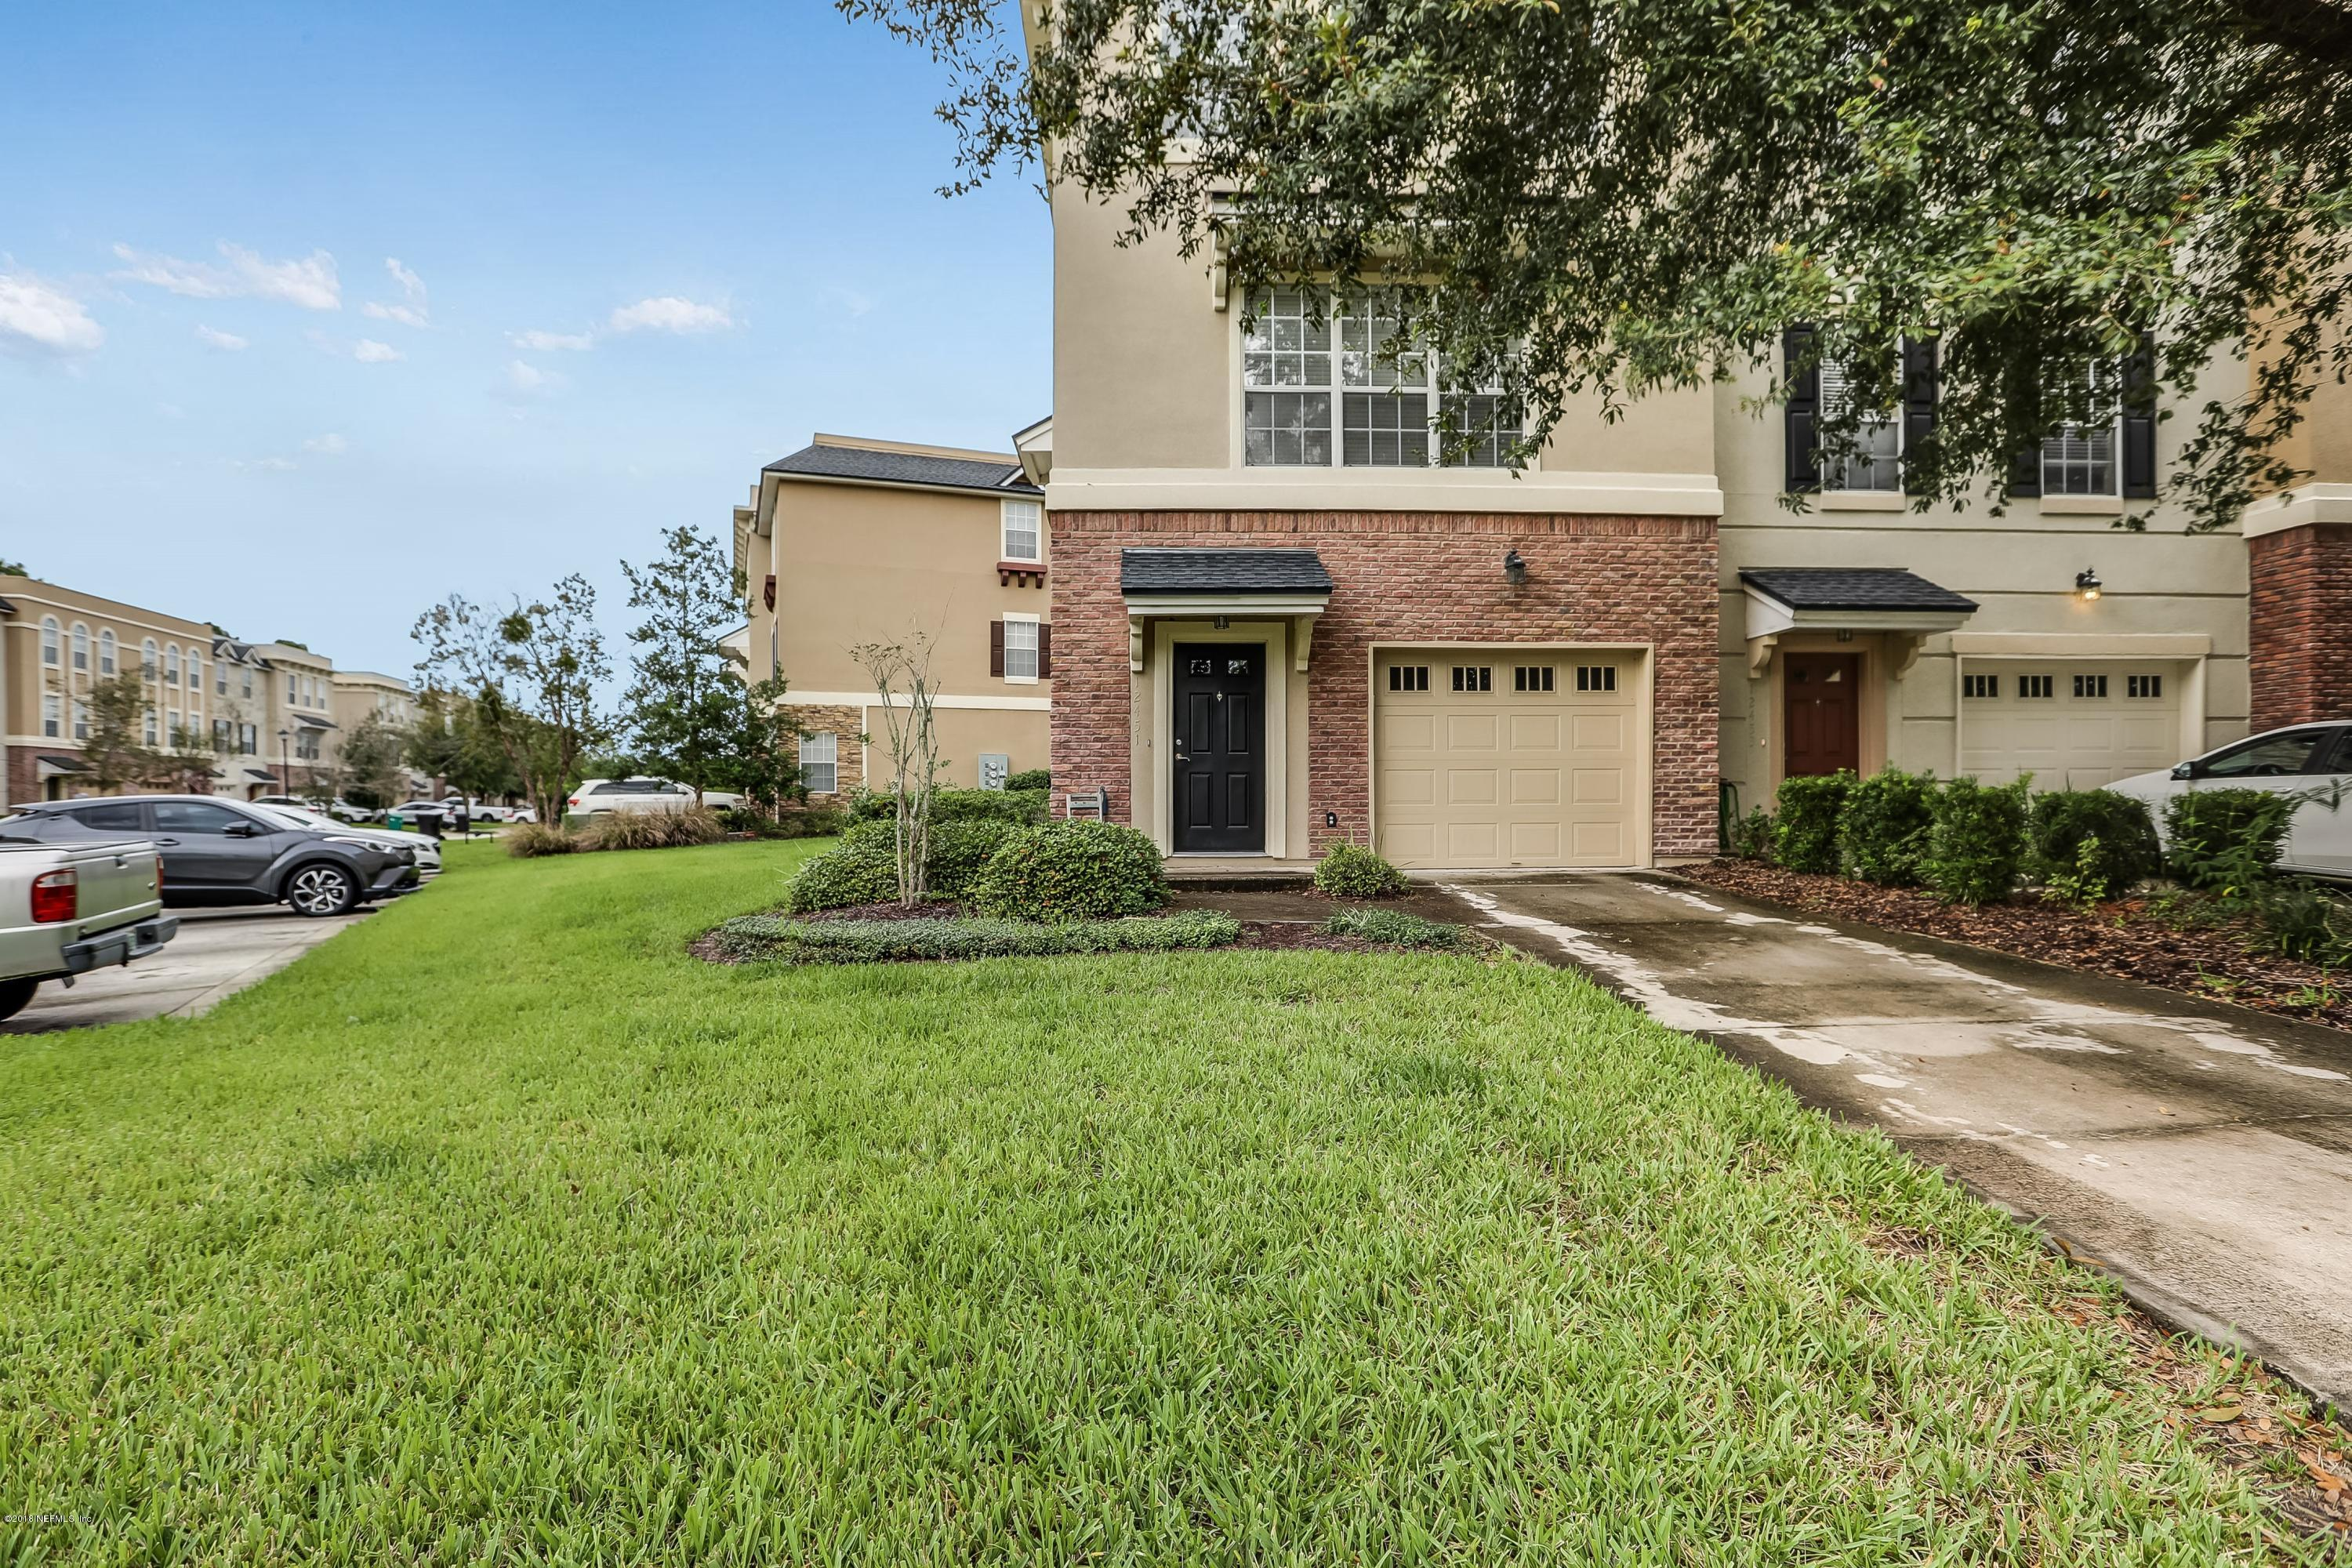 12451 BETHESDA, JACKSONVILLE, FLORIDA 32246, 3 Bedrooms Bedrooms, ,2 BathroomsBathrooms,Residential - townhome,For sale,BETHESDA,959556